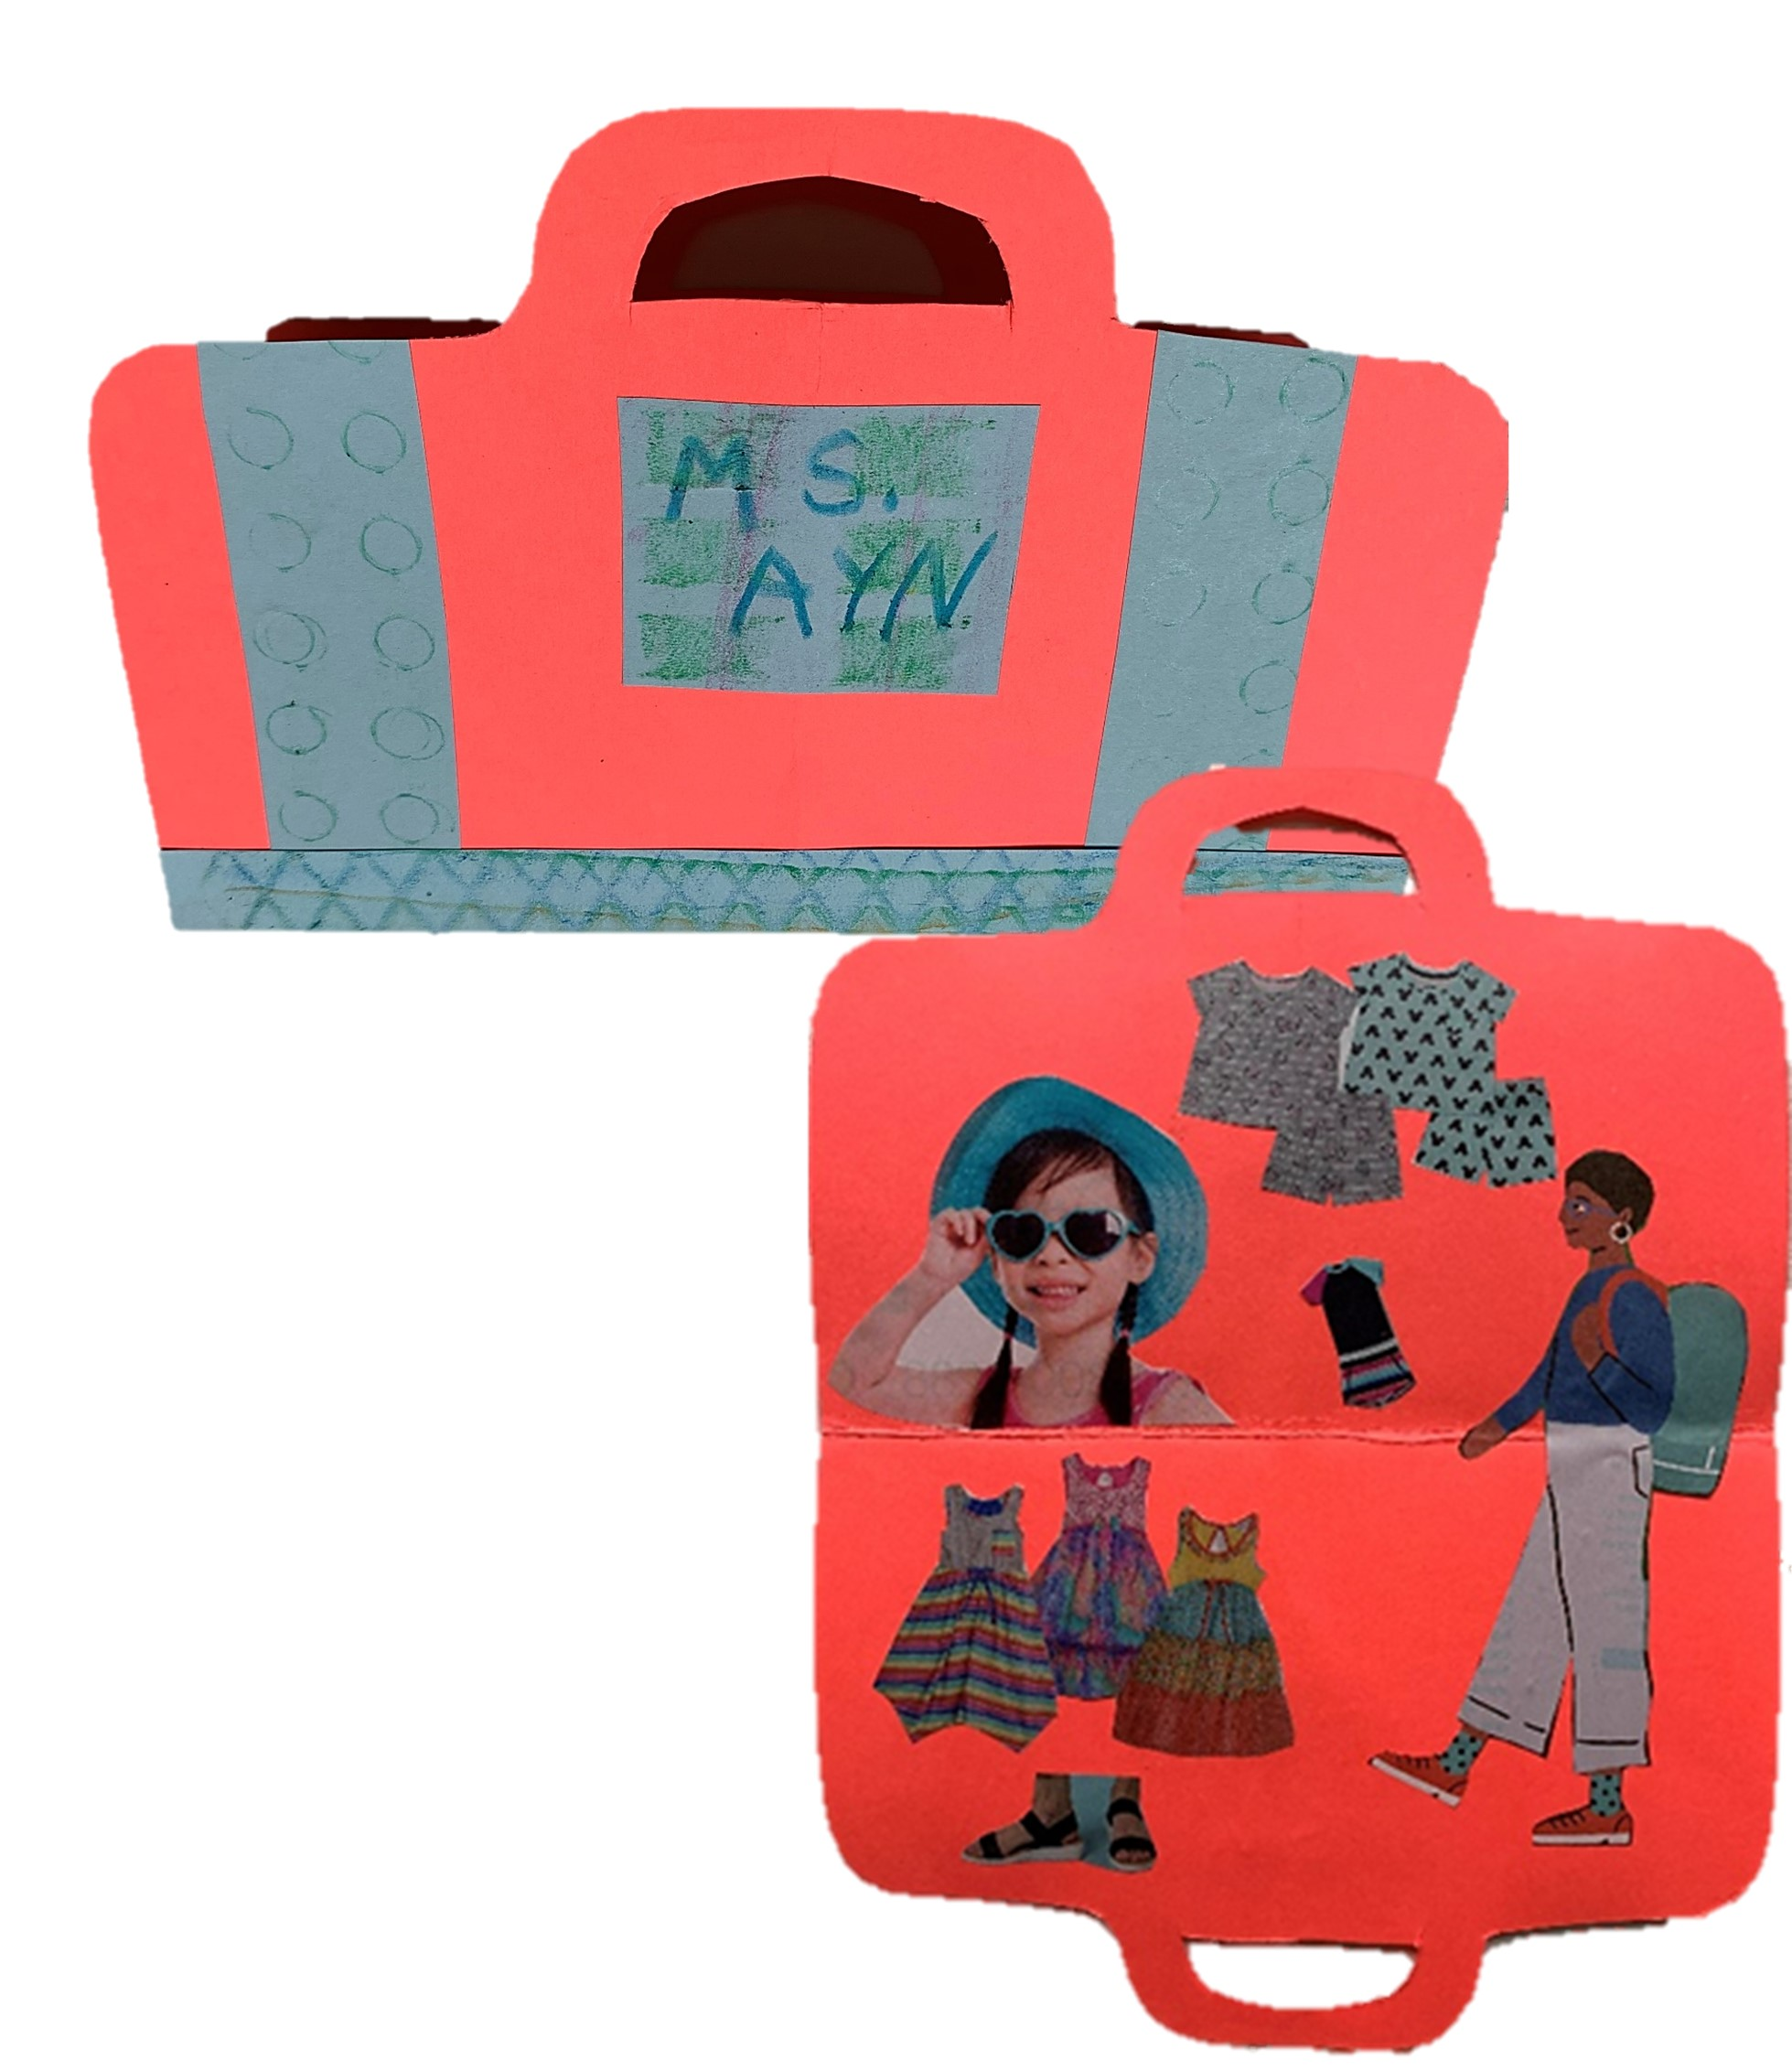 """An example of the embossed construction paper """"suitcase"""" created in this week's Tiny Thursdays at Home lesson."""